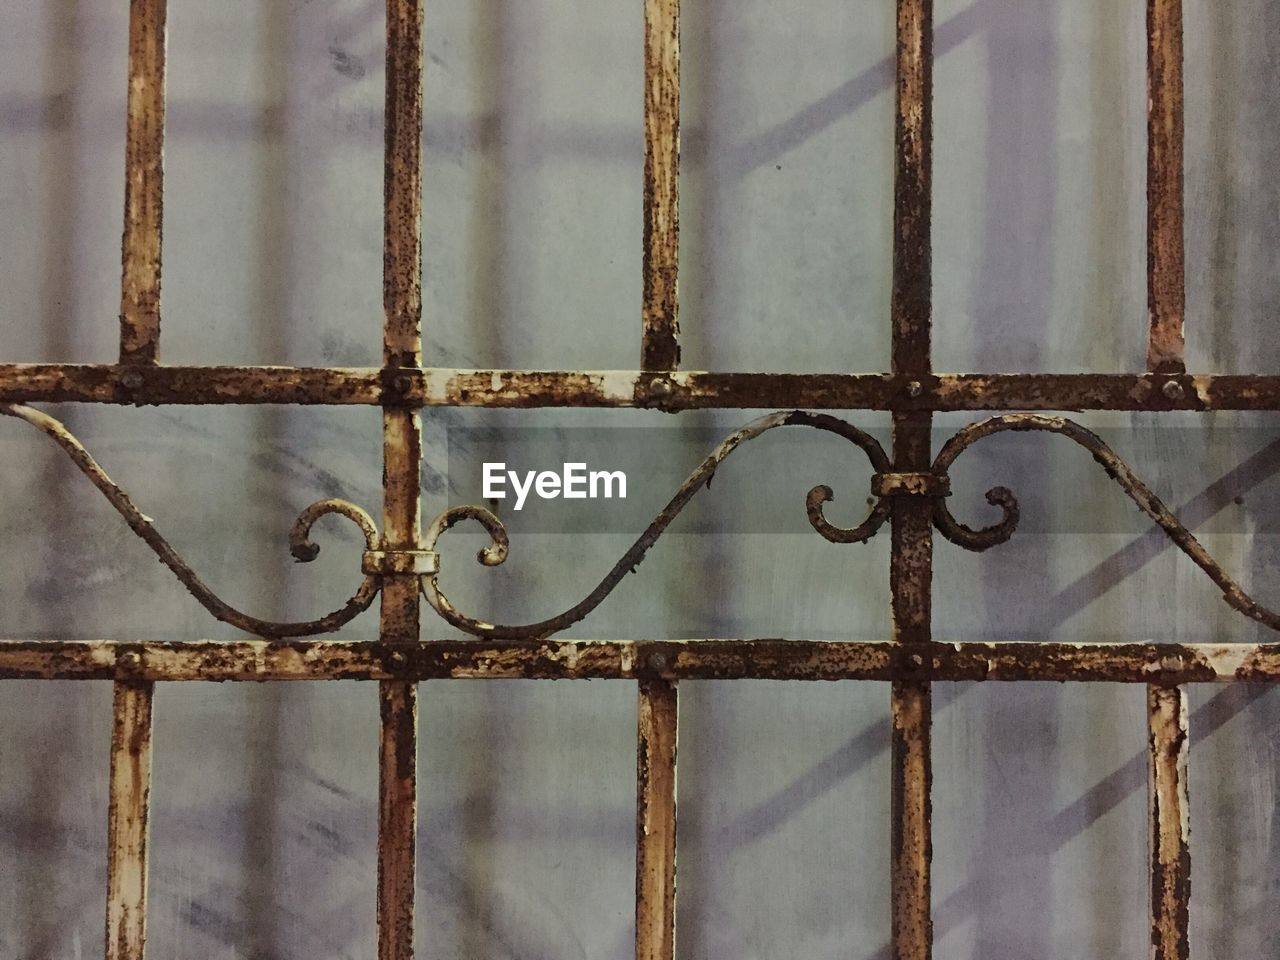 metal, full frame, security, closed, safety, close-up, backgrounds, protection, no people, pattern, rusty, metal grate, day, prison, outdoors, latch, security bar